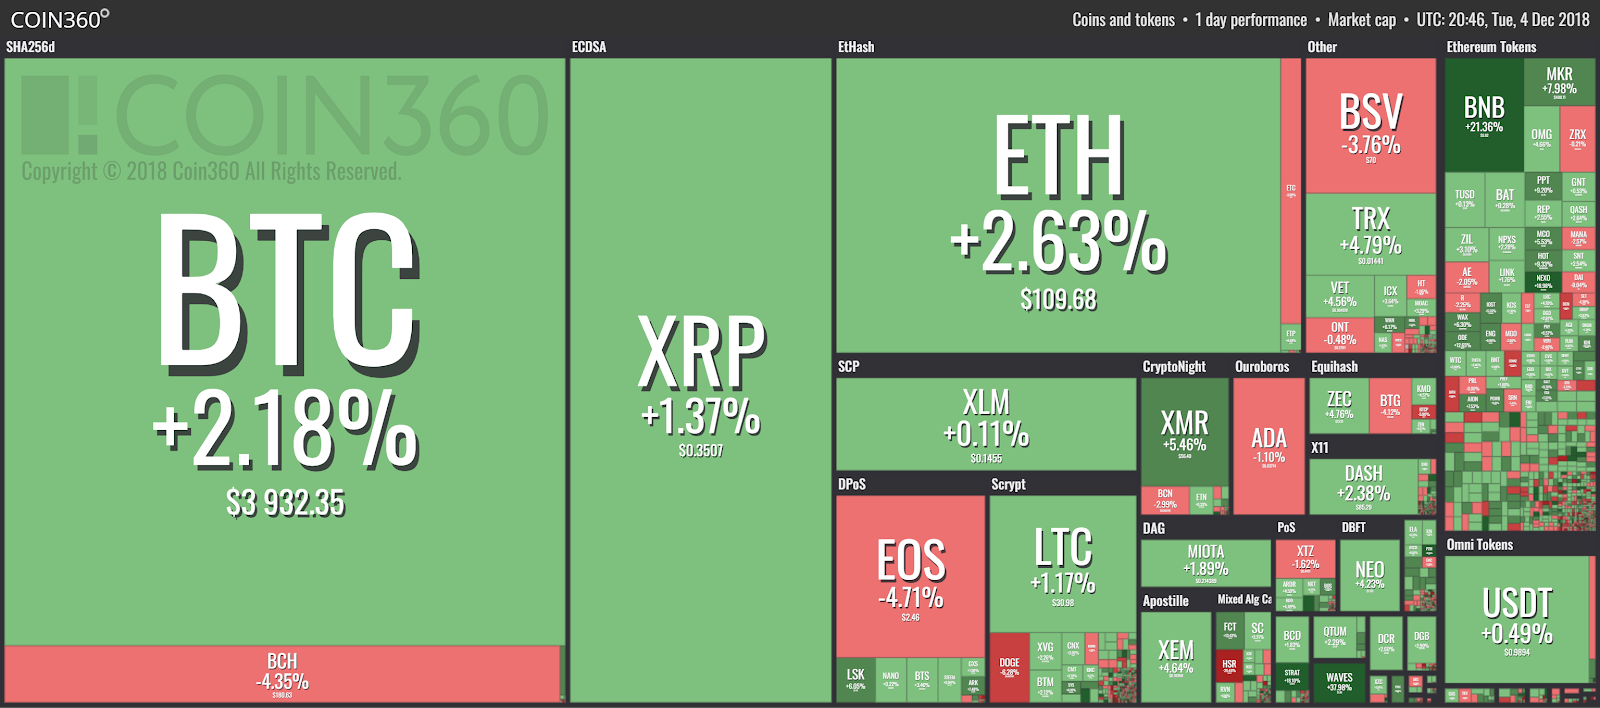 Top Cryptocurrencies See Slight Gains, Bitcoin Hovers Under $4,000